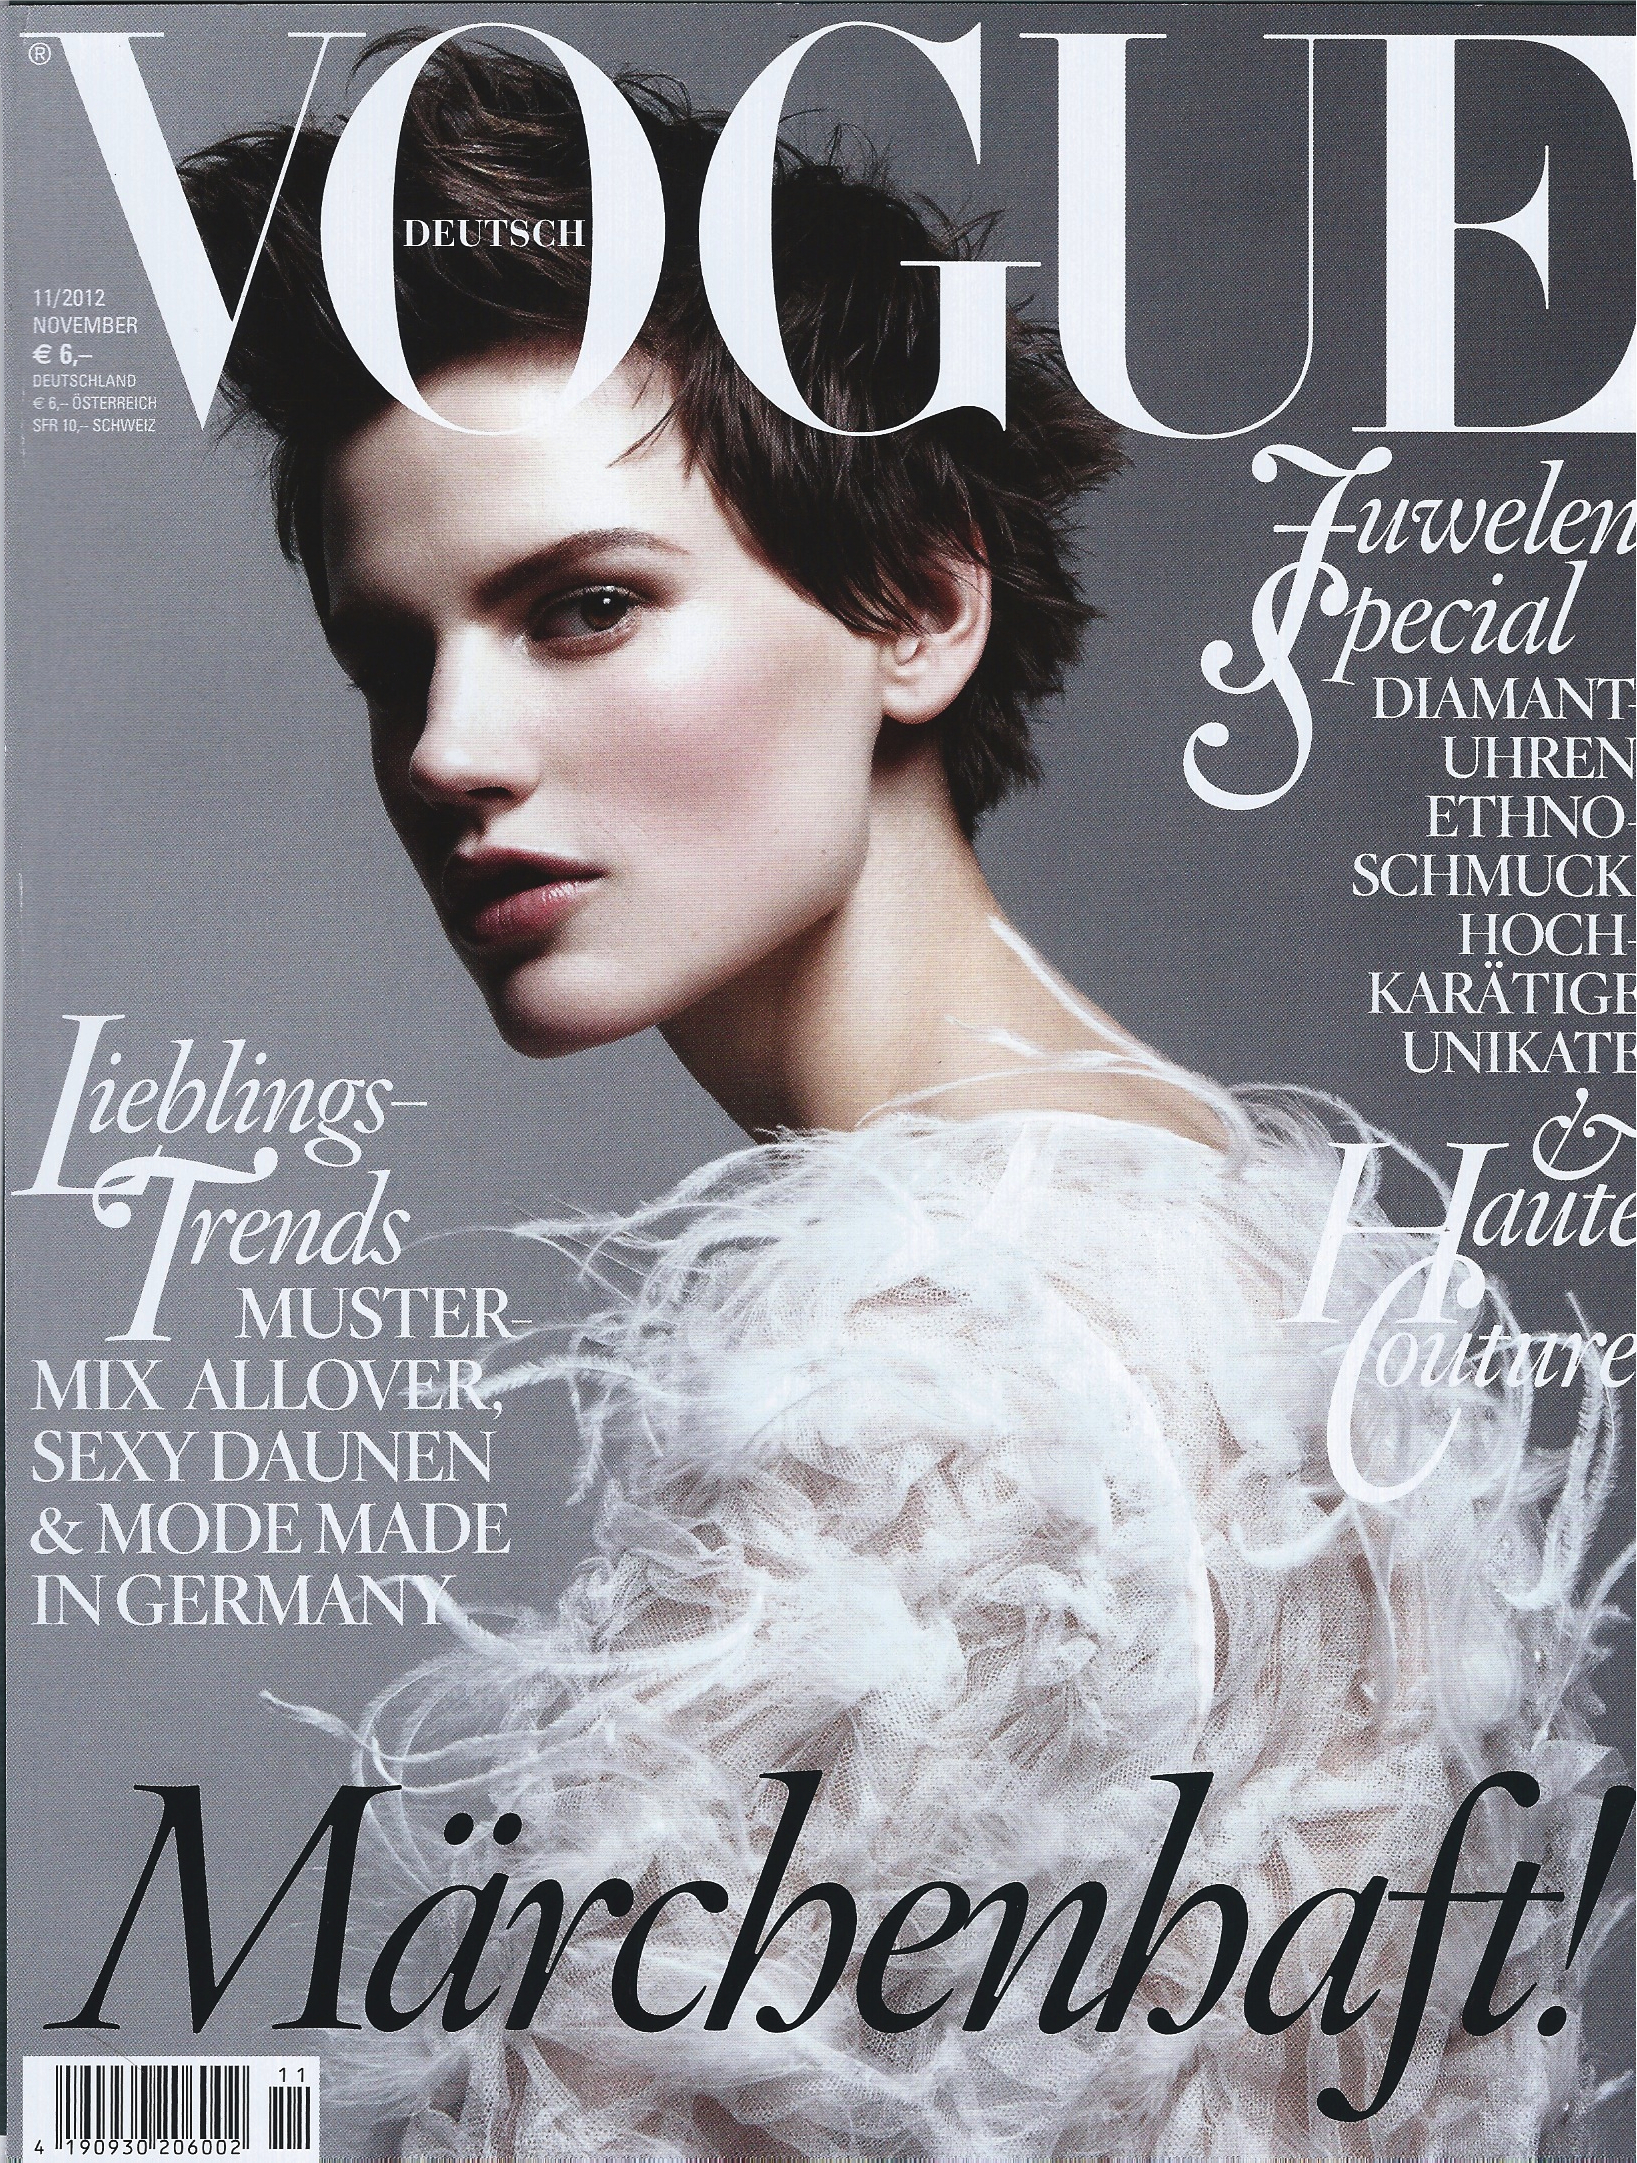 Dan Jackson - German Vogue Cover Nov 2012.jpg